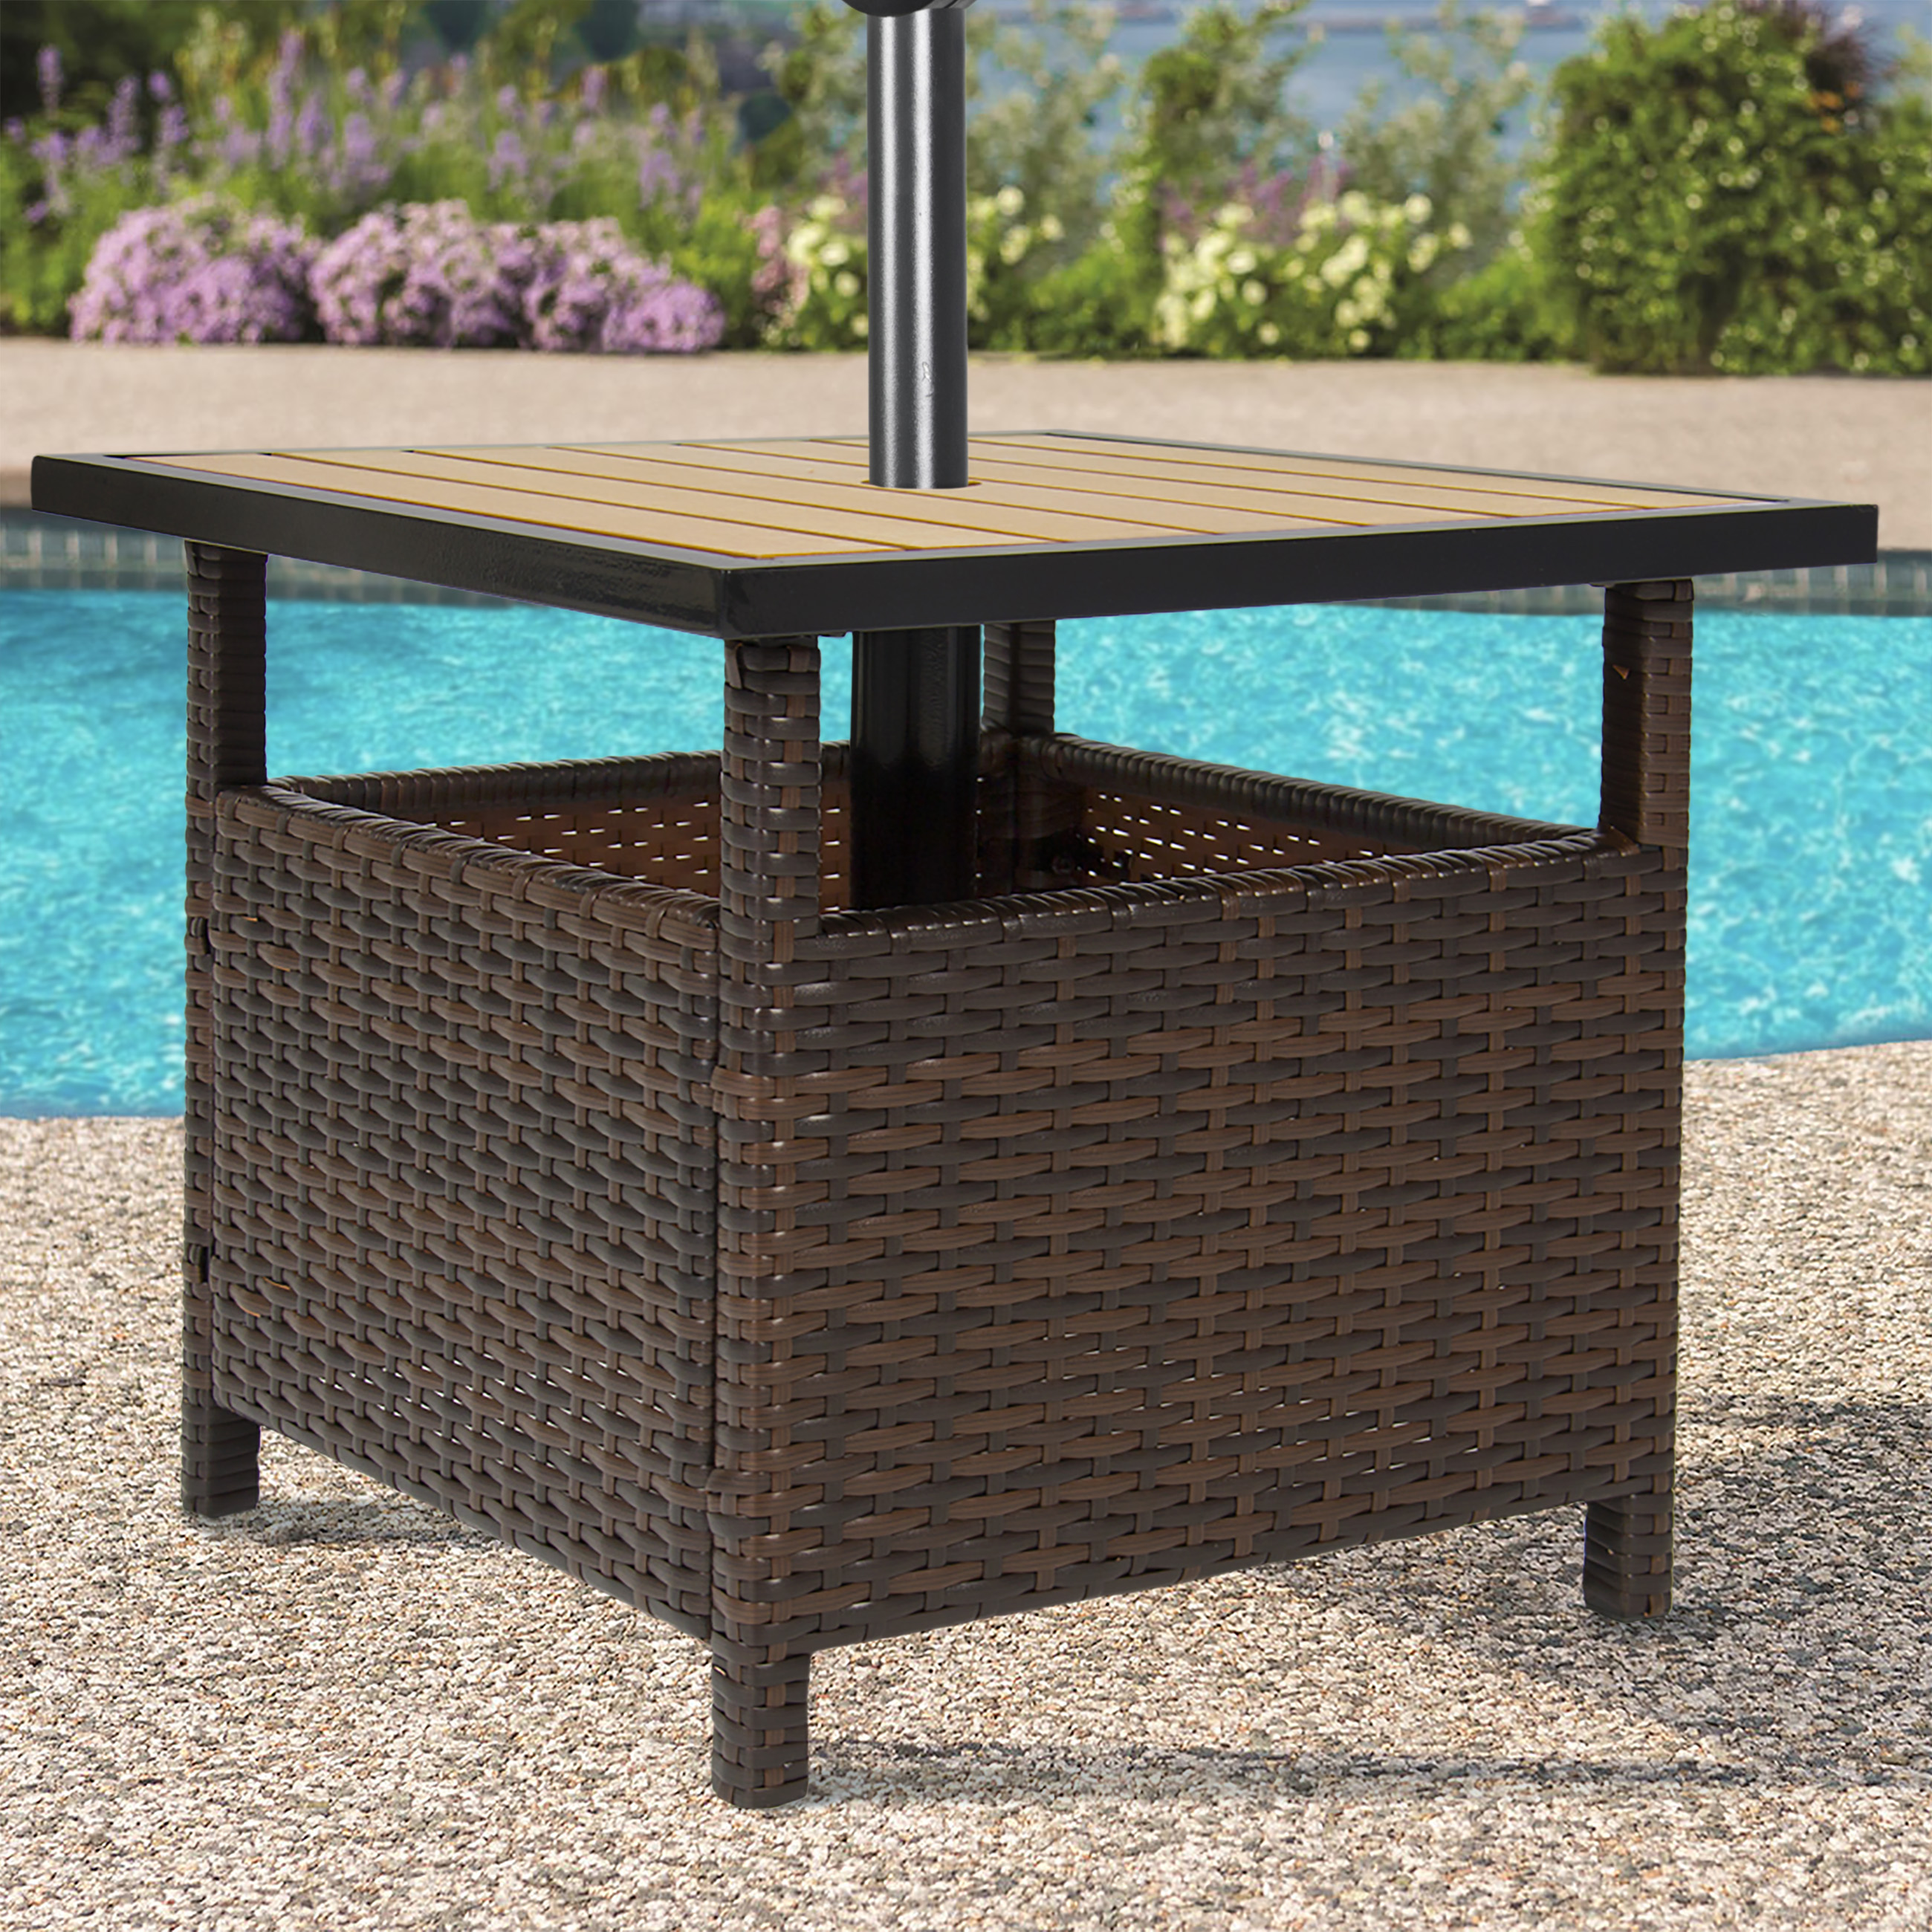 best choice products outdoor furniture wicker rattan patio umbrella side table stand for garden pool deck brown metal threshold cover bunnings couch wood iron end teal bedroom